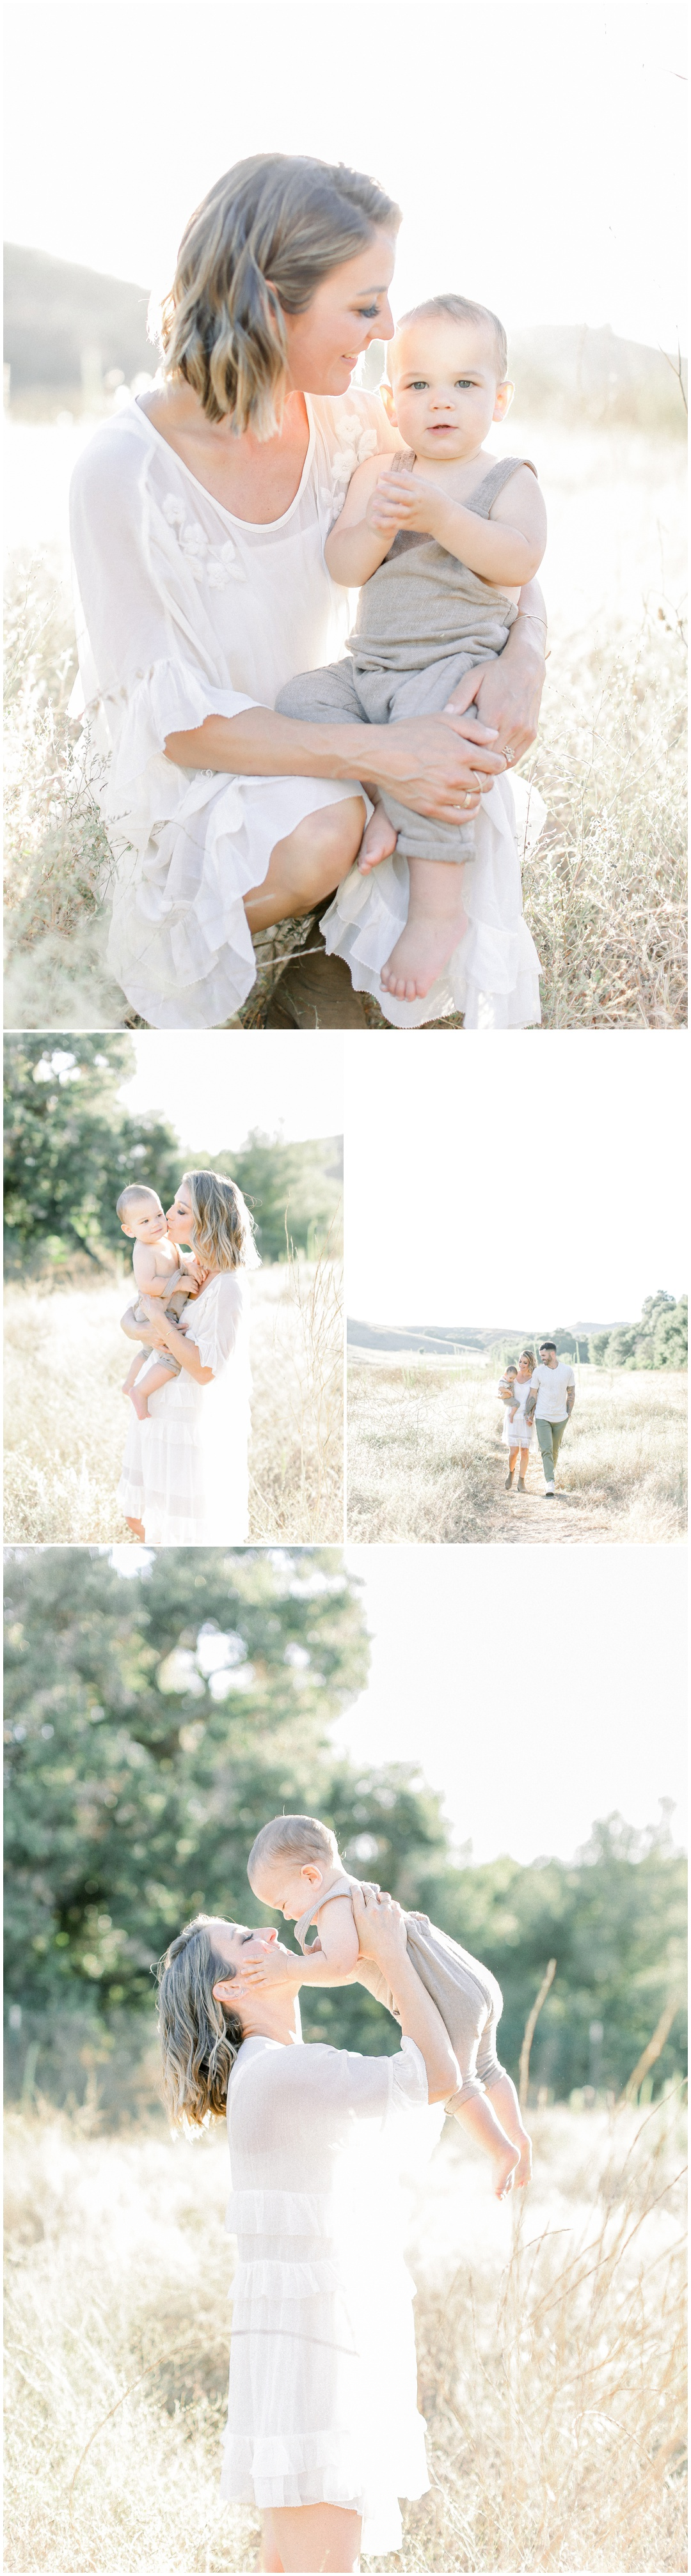 Newport_Beach_Family_Session_Orange_County_Family_Photographer_Thomas_Riley_Wilderness_Park_Carrie_Stotts_Sean_Stotts__4326.jpg